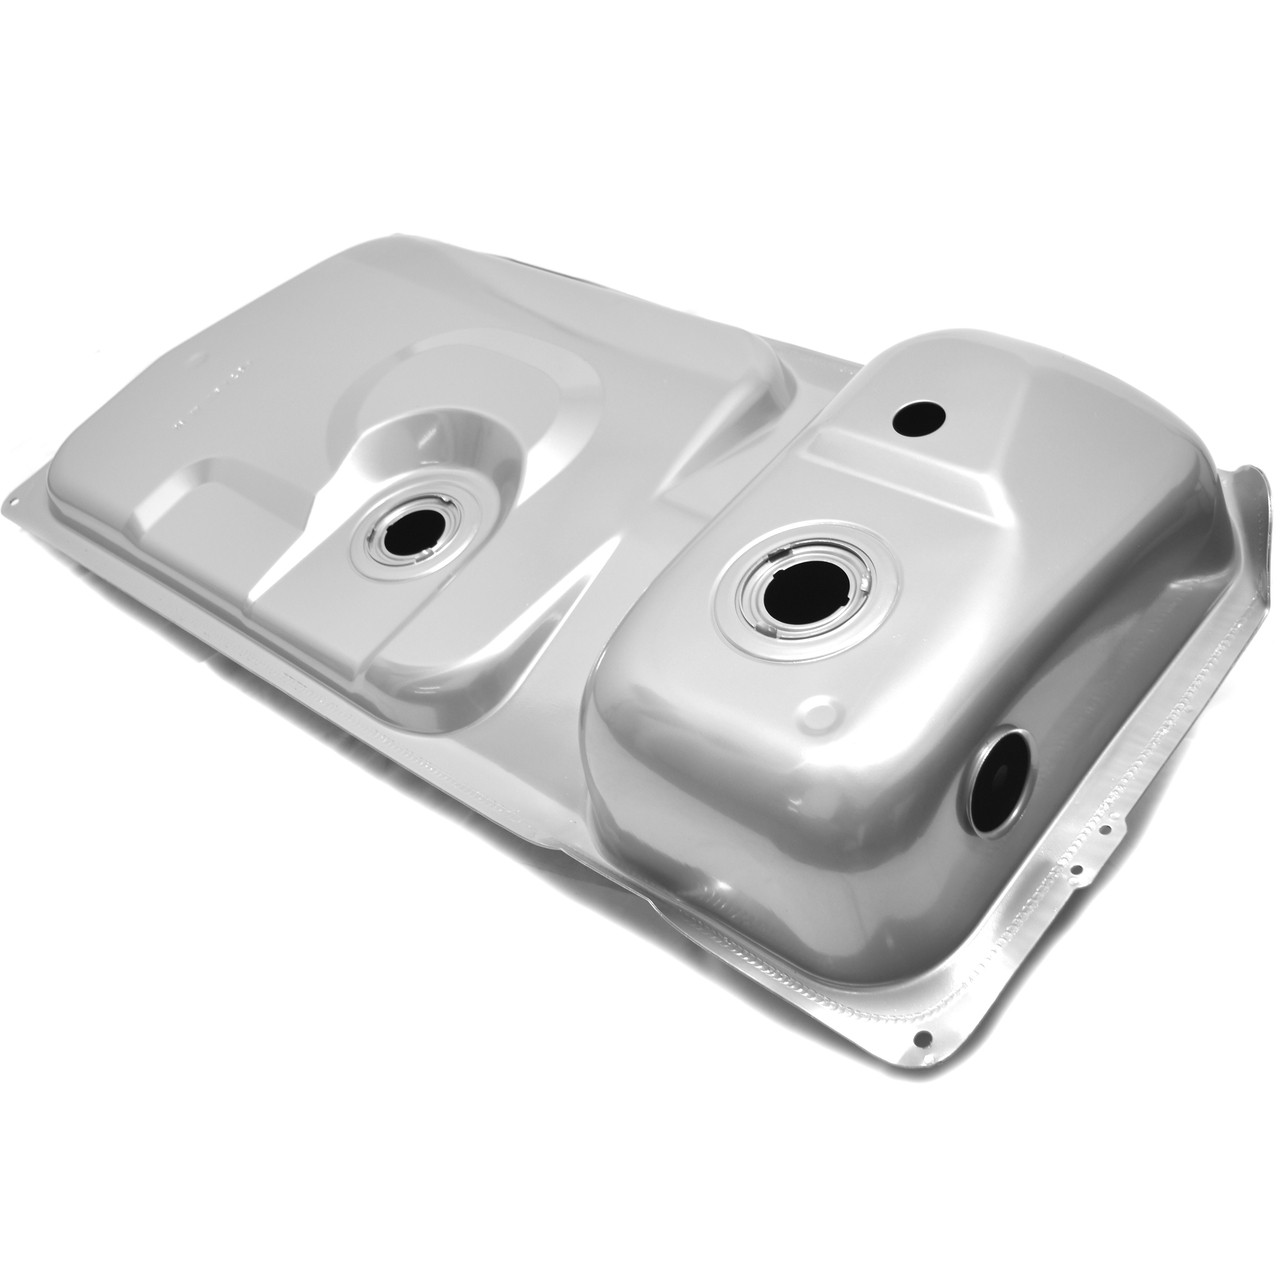 Fuel Tank 15.4 Gallon For In-Tank Fuel Pump With Fuel Injection [FM-EG004A]